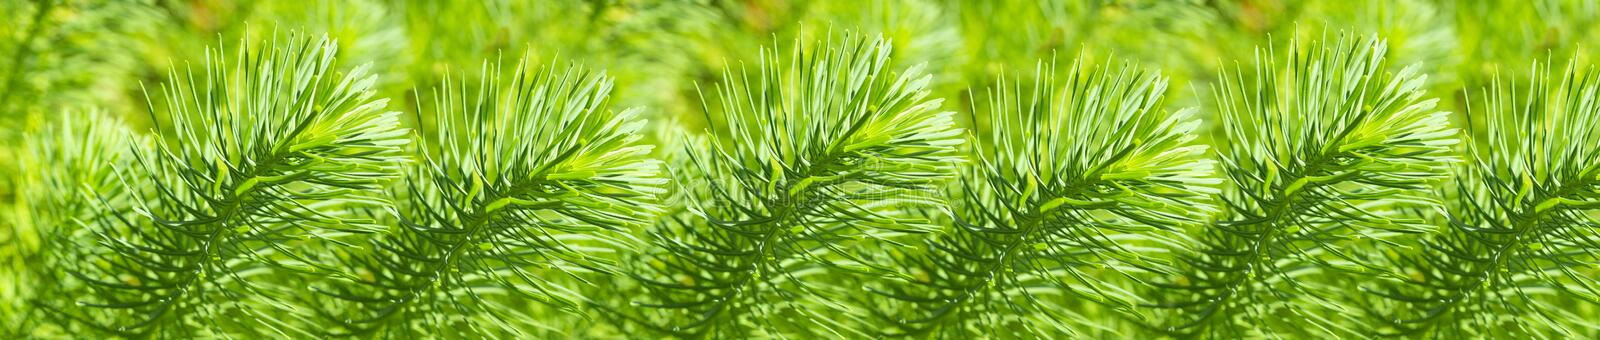 Panorama of repeating twigs of Euphorbia cyparissias, background wallpaper banner stock photo